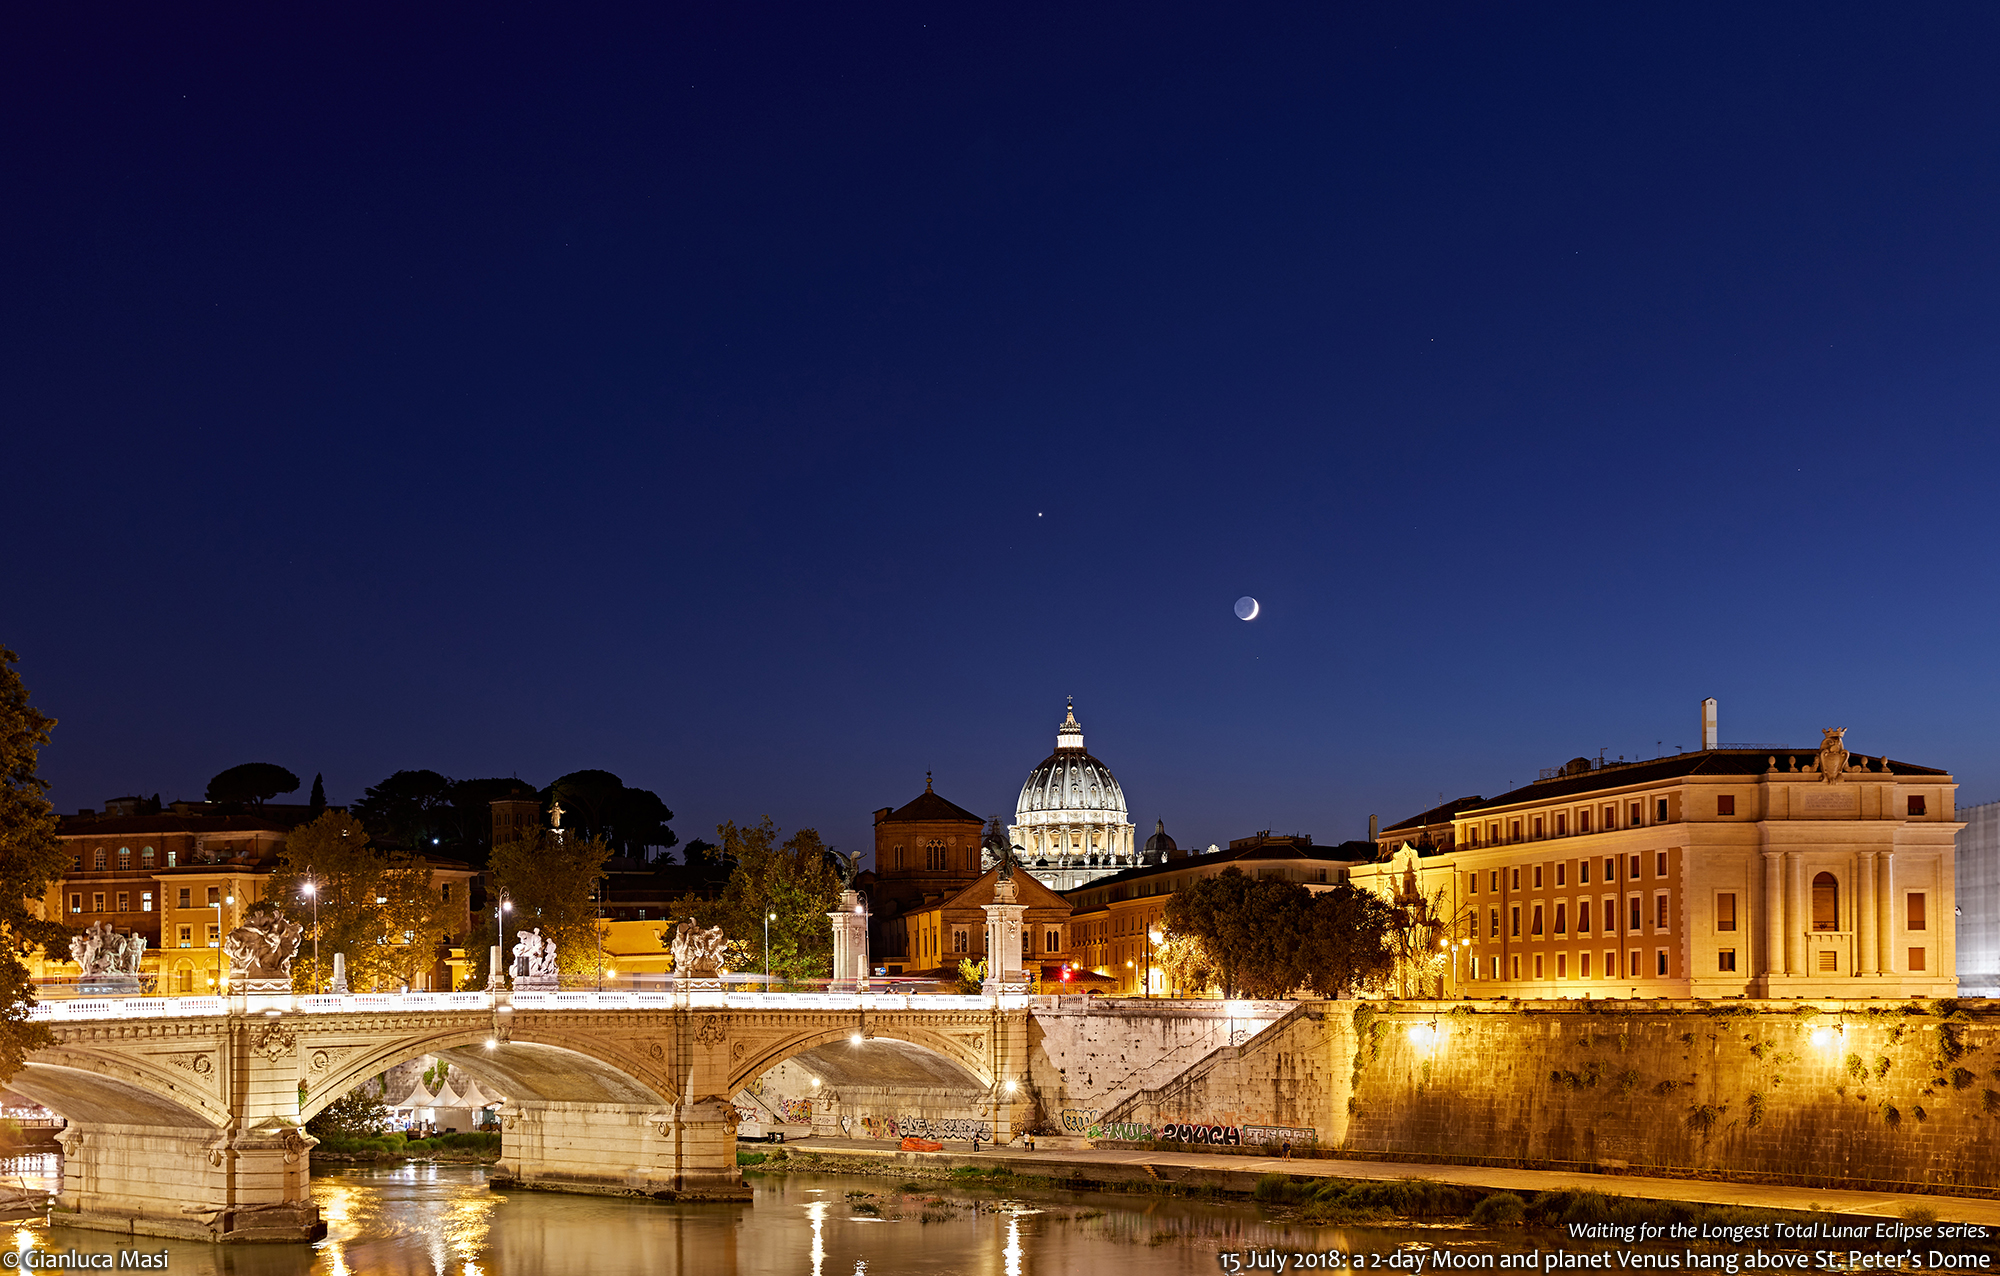 The Moon and Venus put their show above St. Peter's Dome and the Tiber river in Rome - 15 July 2018